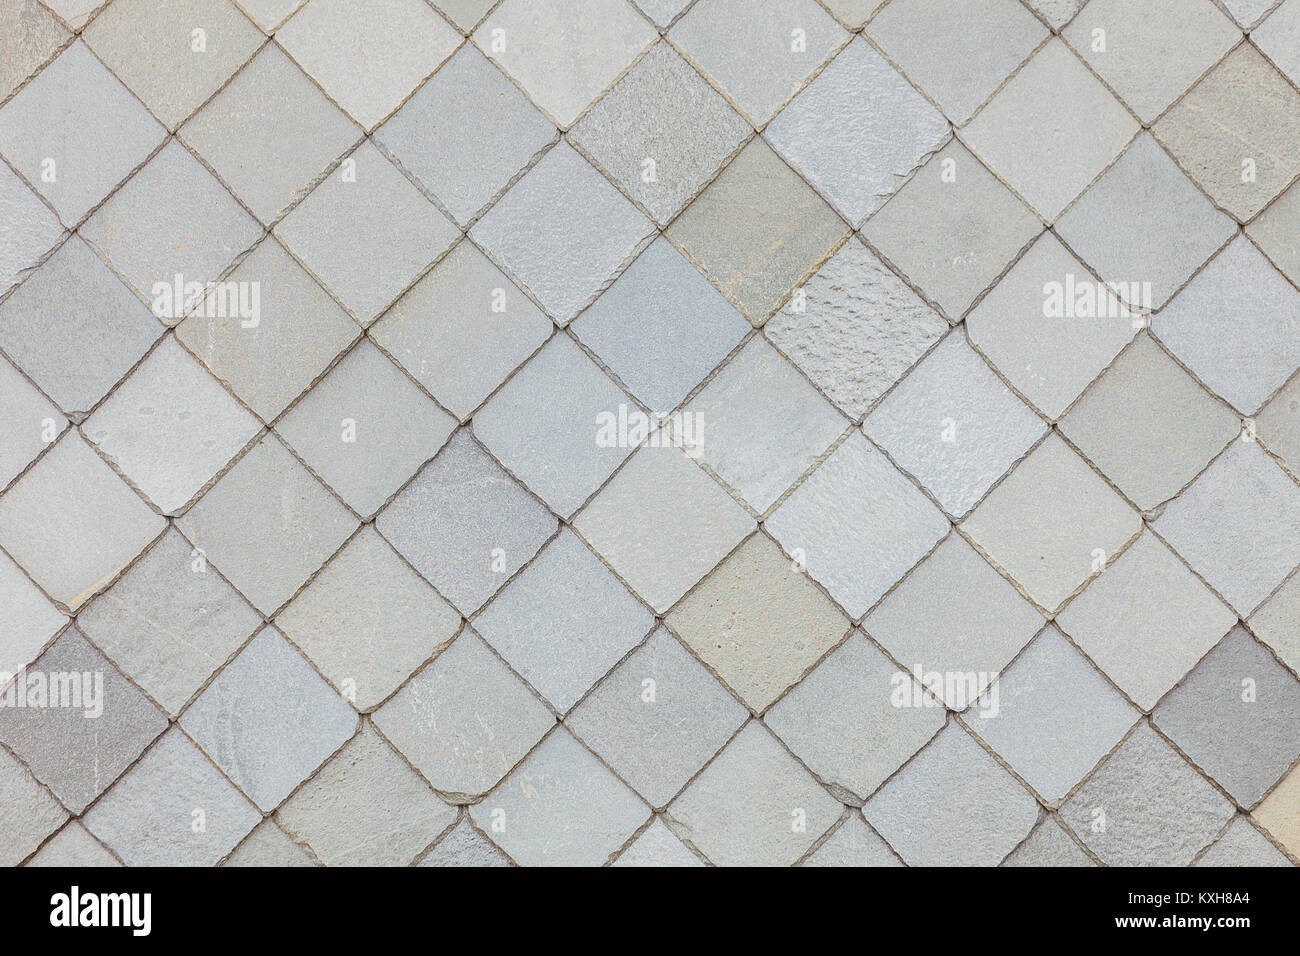 Brown Stone Tiles Roof Texture Architecture Background Seamless